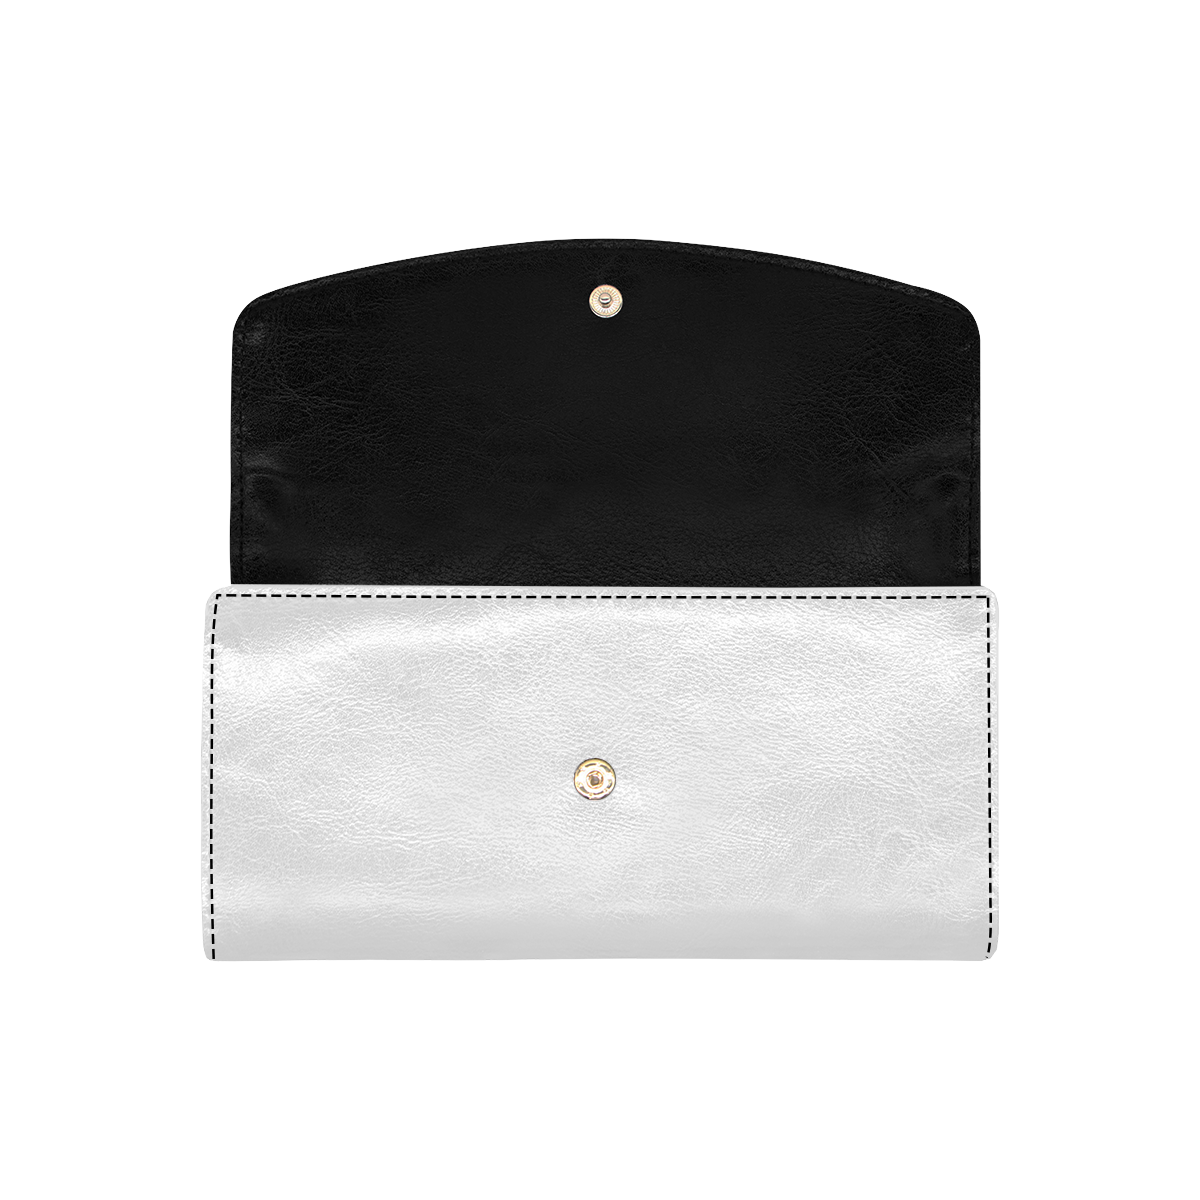 Women's Flap Wallet (Model 1707)